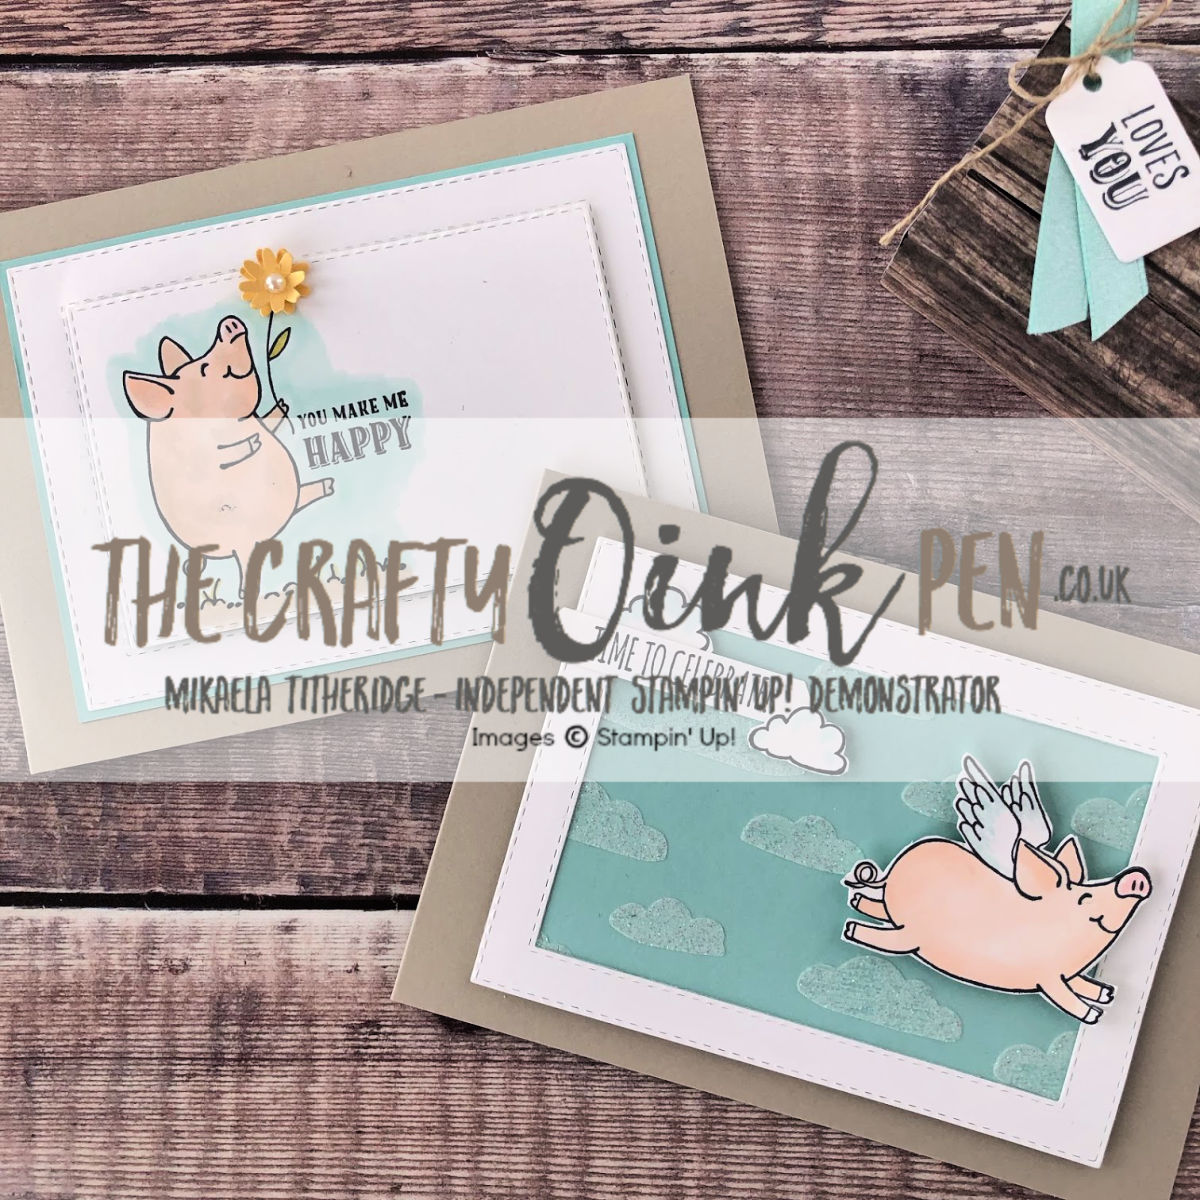 This Little Piggy Card Class Set by Artisan Design Team Member 2019, Mikaela Titheridge, UK Independent Stampin' Up! Demonstrator, The Crafty oINK Pen. Supplies available through my online store 24/7